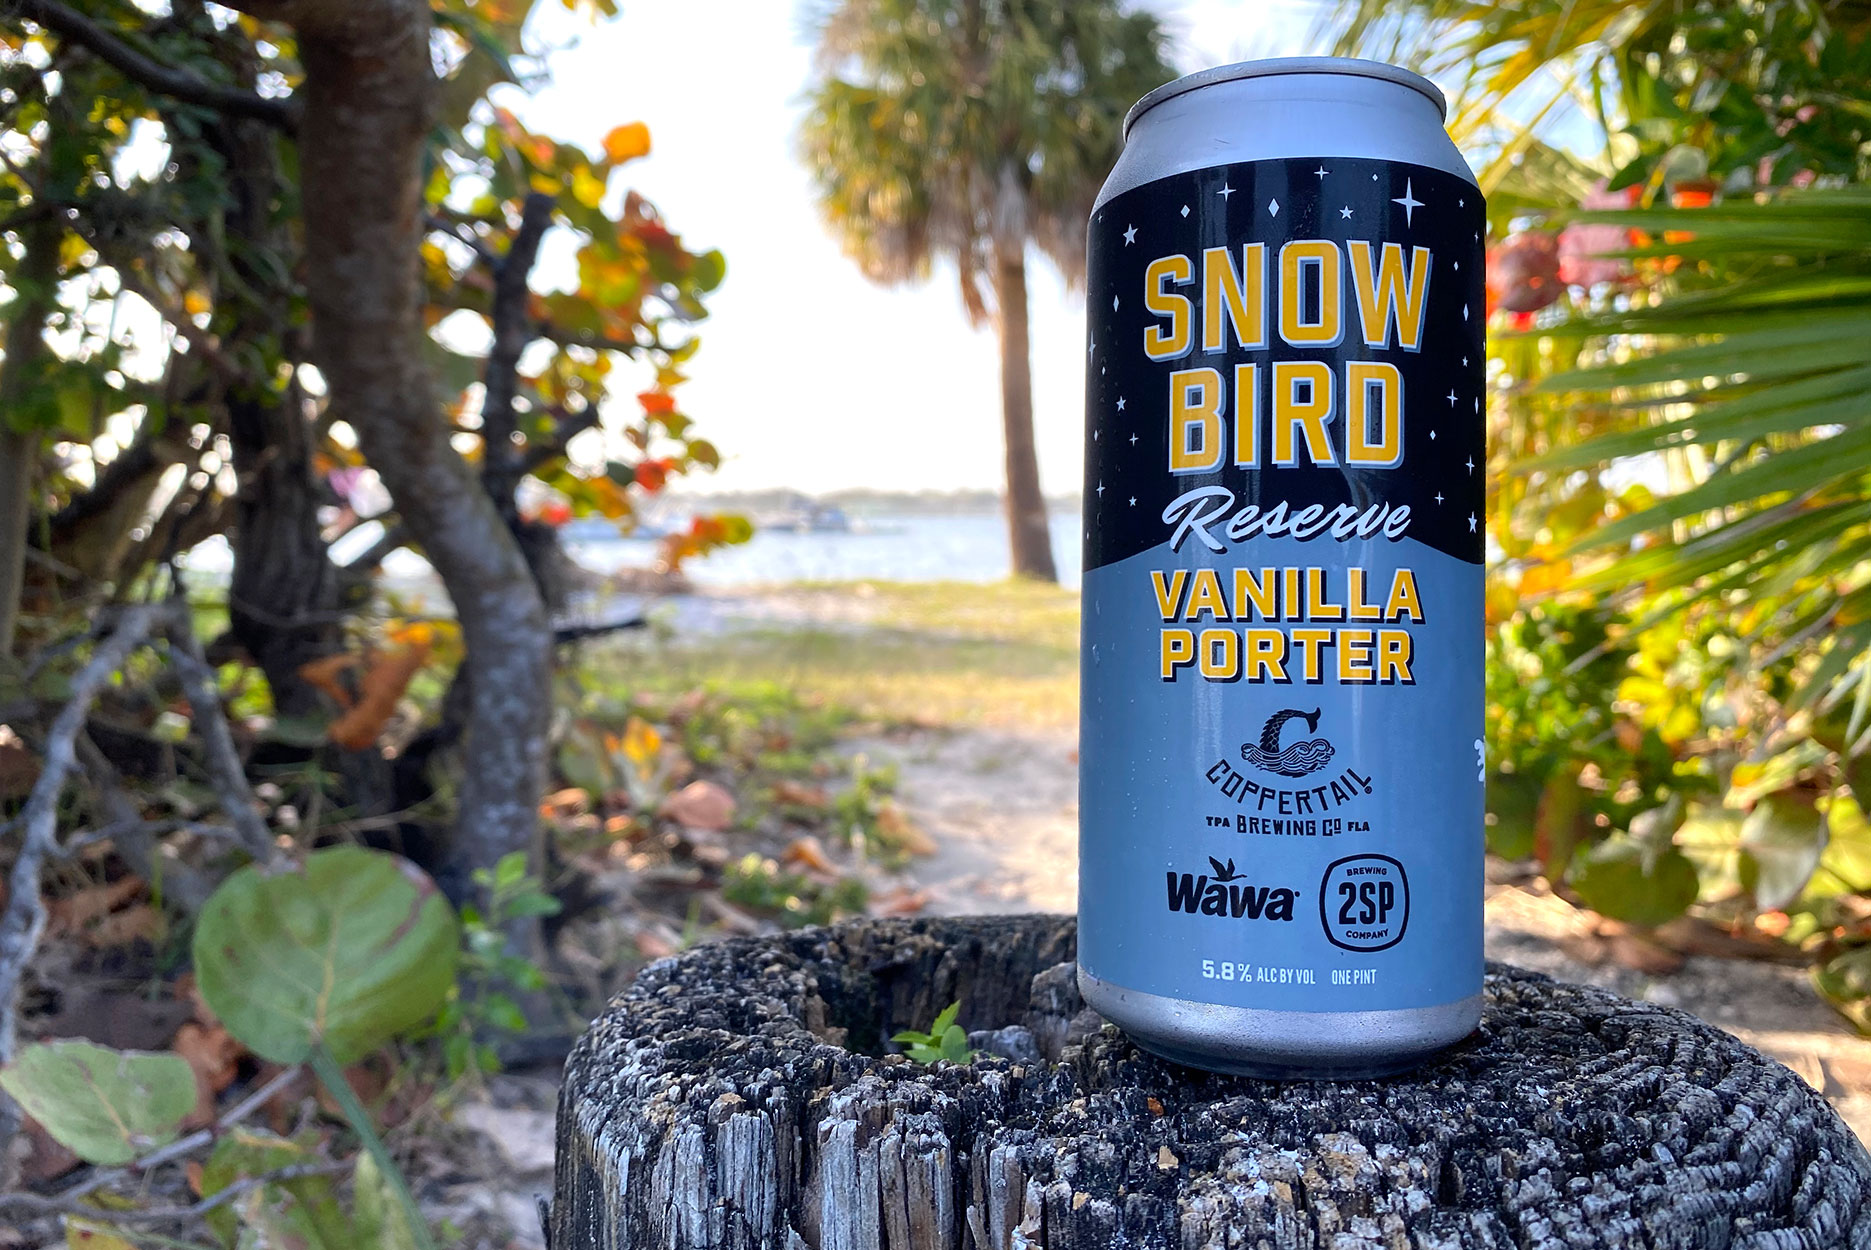 a can of wawa and coppertail's snow bird vanilla porter beer